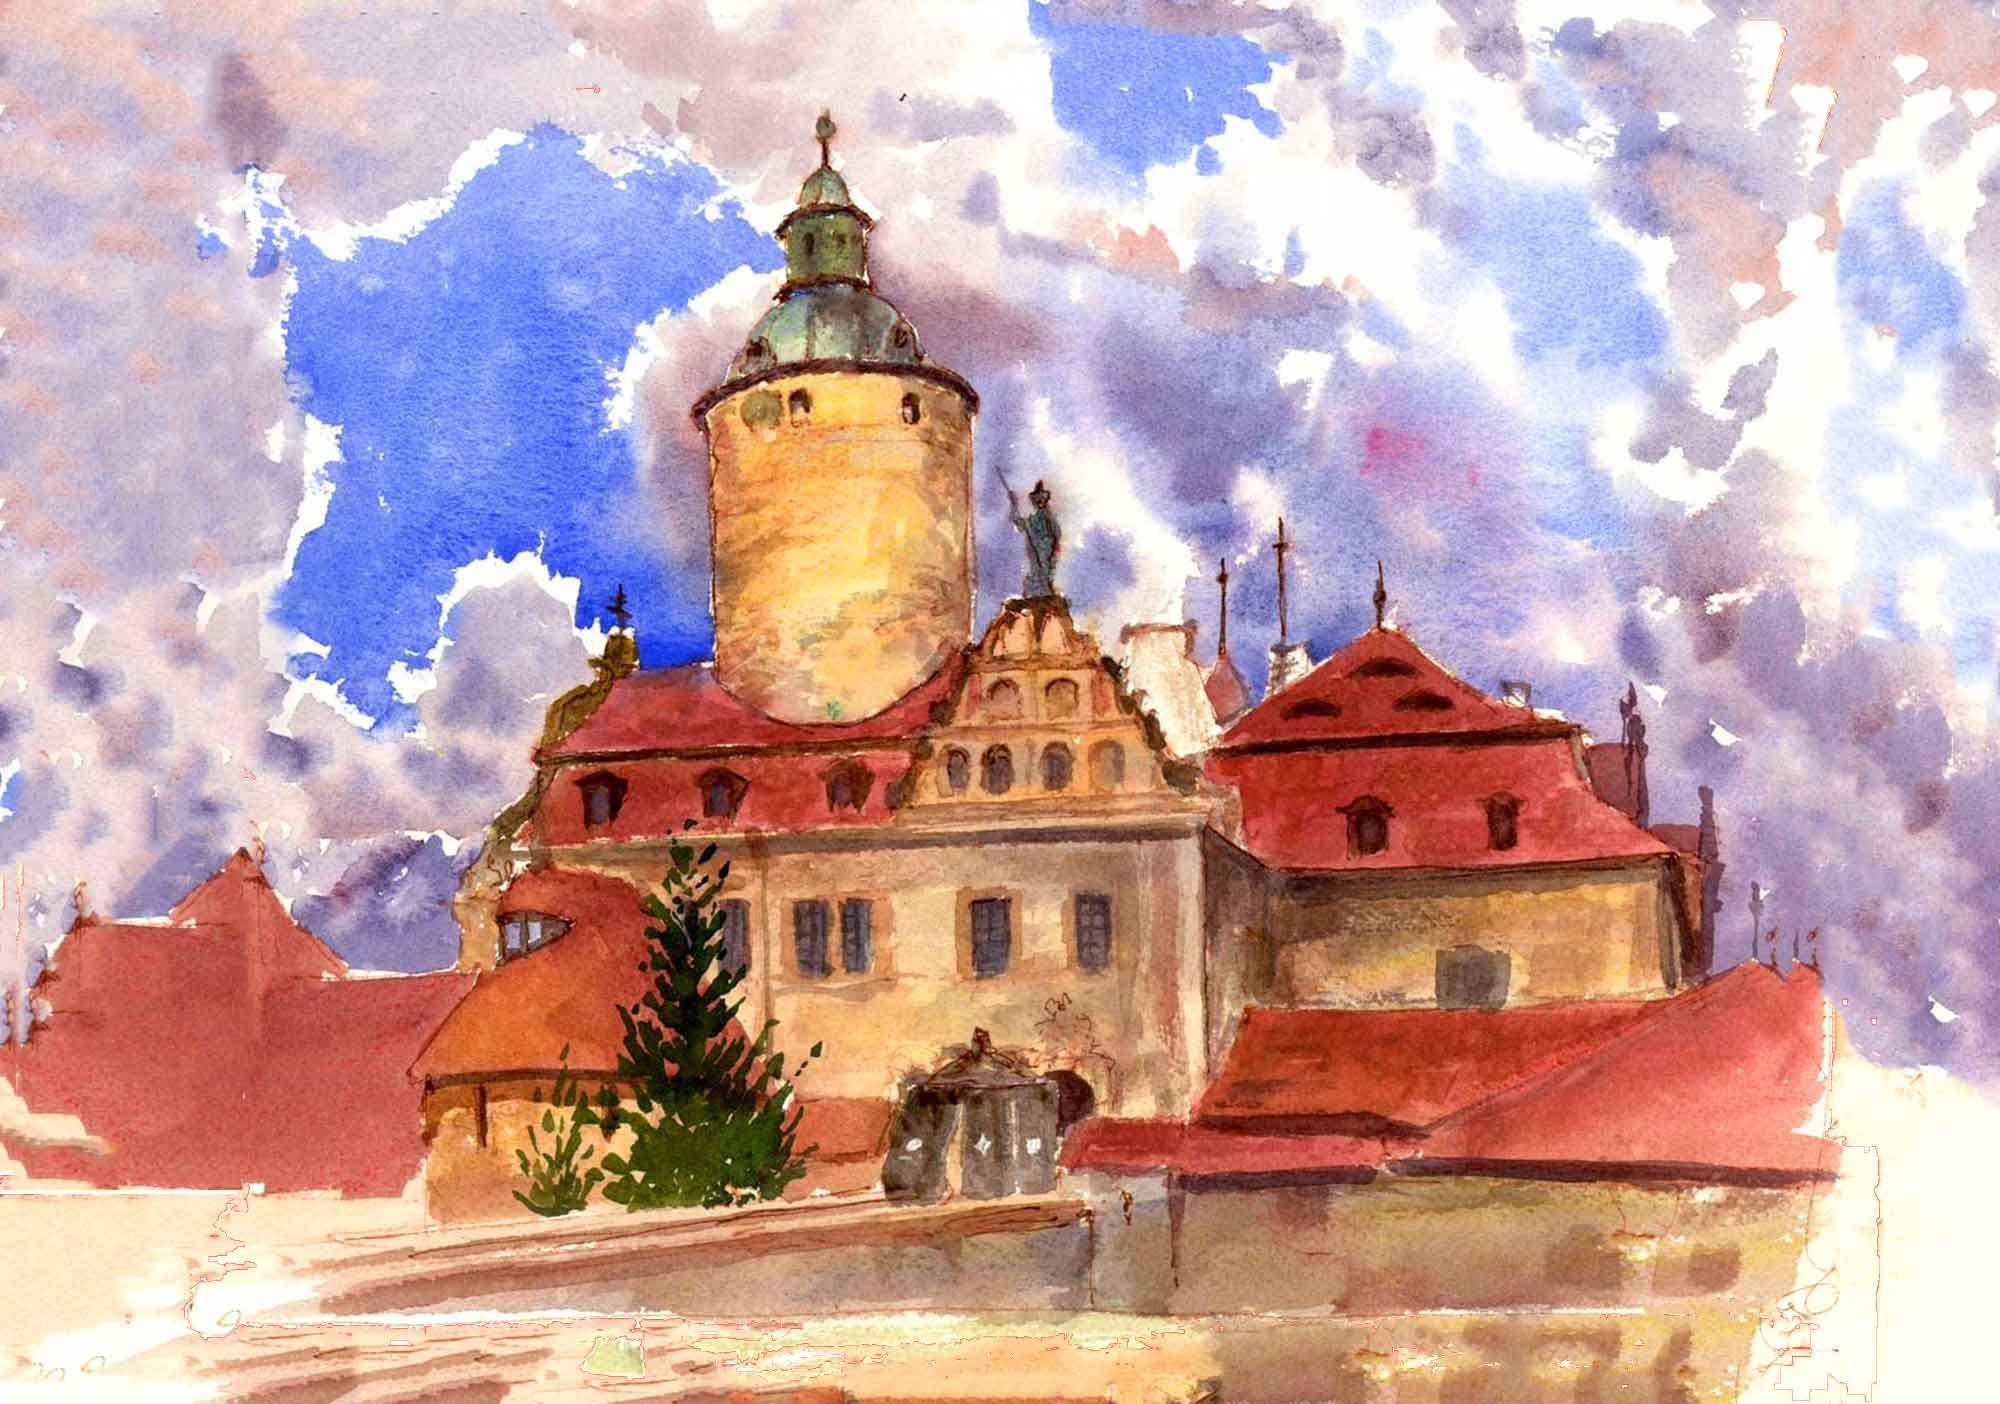 Castle Czocha painted in watercolors